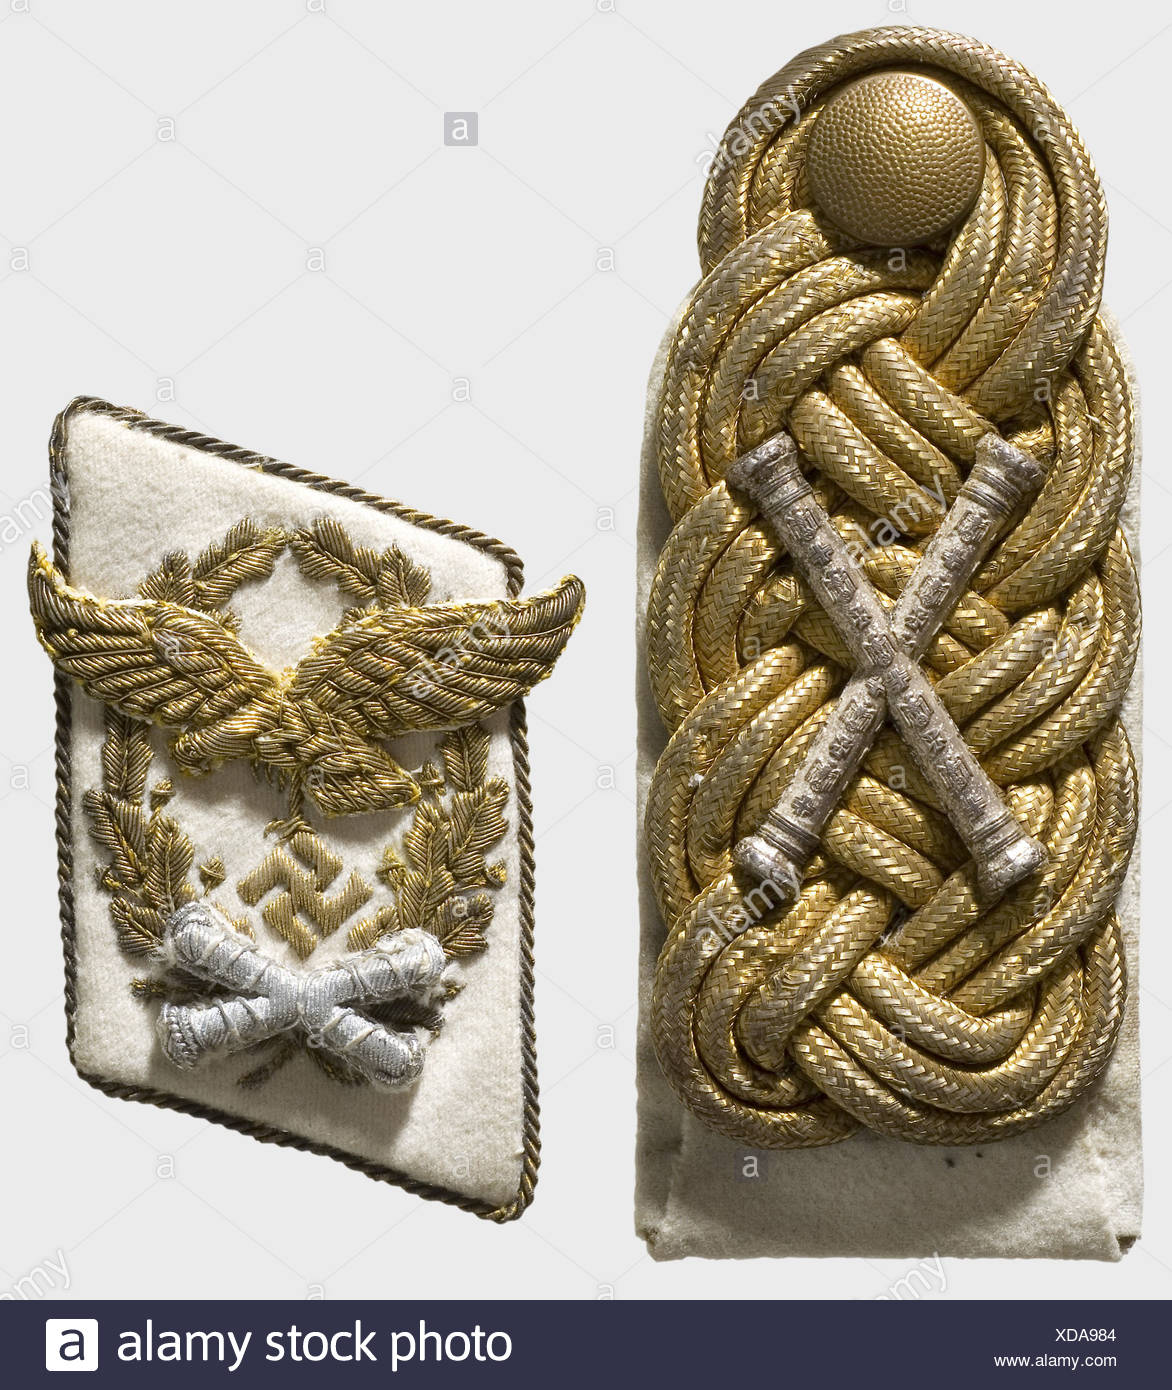 A separate collar patch and shoulder board, for a Luftwaffe Field Marshal Collar patch of fine white cloth with surrounding gold cord piping, oak leaf wreath, and separatly applied eagle in the finest gold embroidery, with silver-embroidered, raised, crossed marshal's batons. Shoulder board intertwined of three parallel round golden cords, bearing crossed silver marshal's batons, stamped in very fine detail. White backing. Extremely rare insignia for the highest rank in the Luftwaffe, only awarded six times. According to the consignor, these pieces come from th, Additional-Rights-Clearences-NA - Stock Image